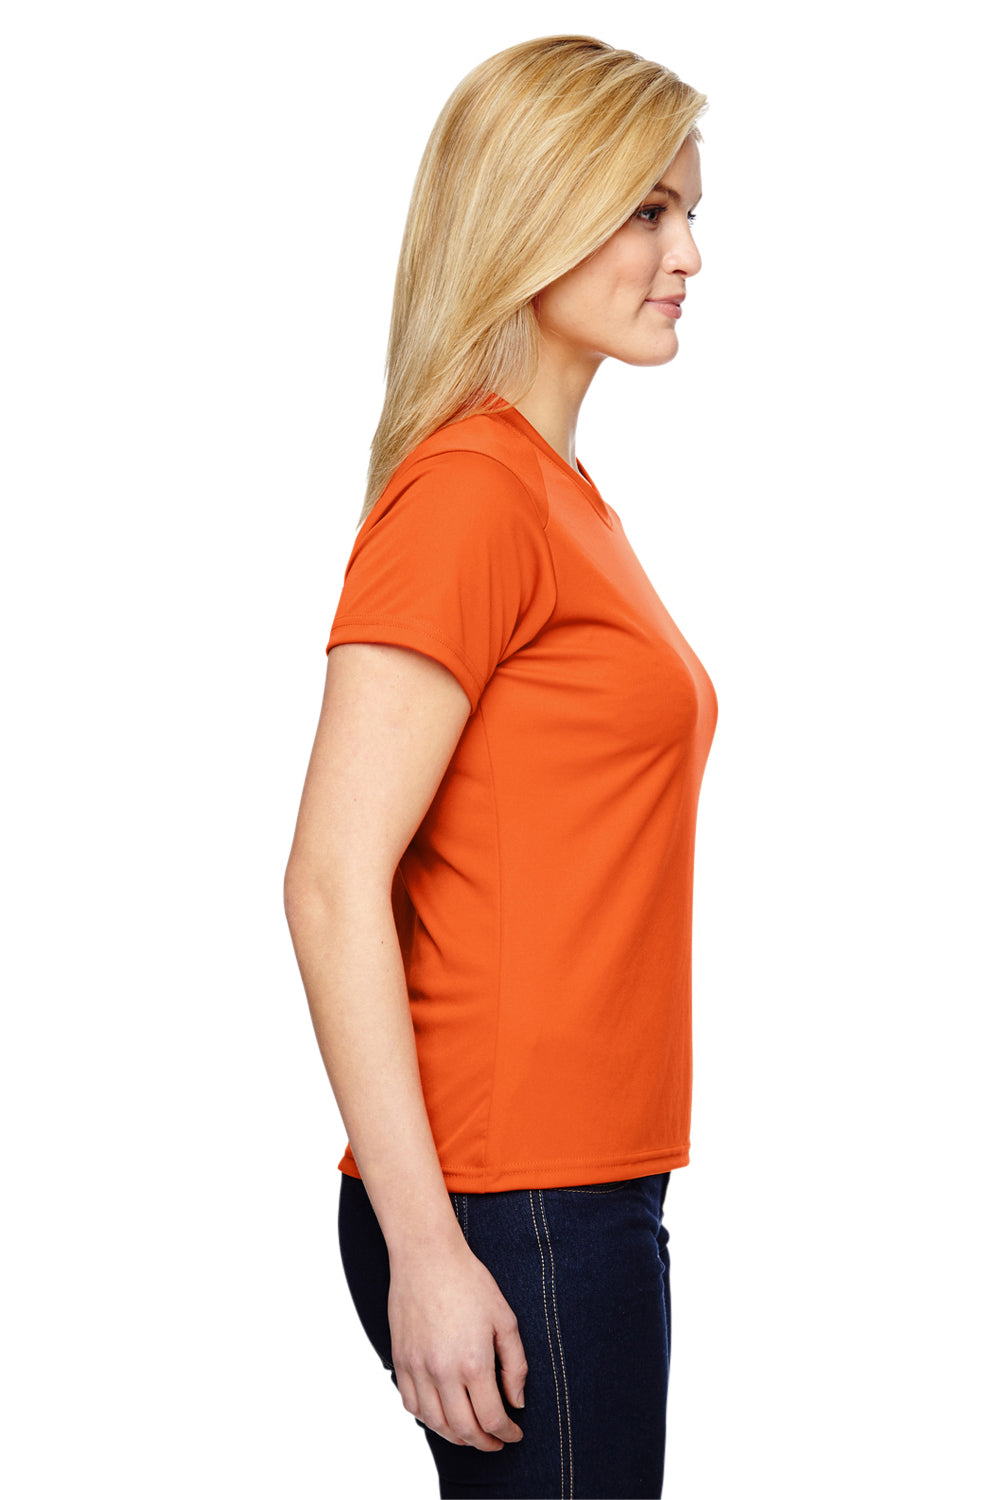 A4 NW3201 Womens Cooling Performance Moisture Wicking Short Sleeve Crewneck T-Shirt Orange Side